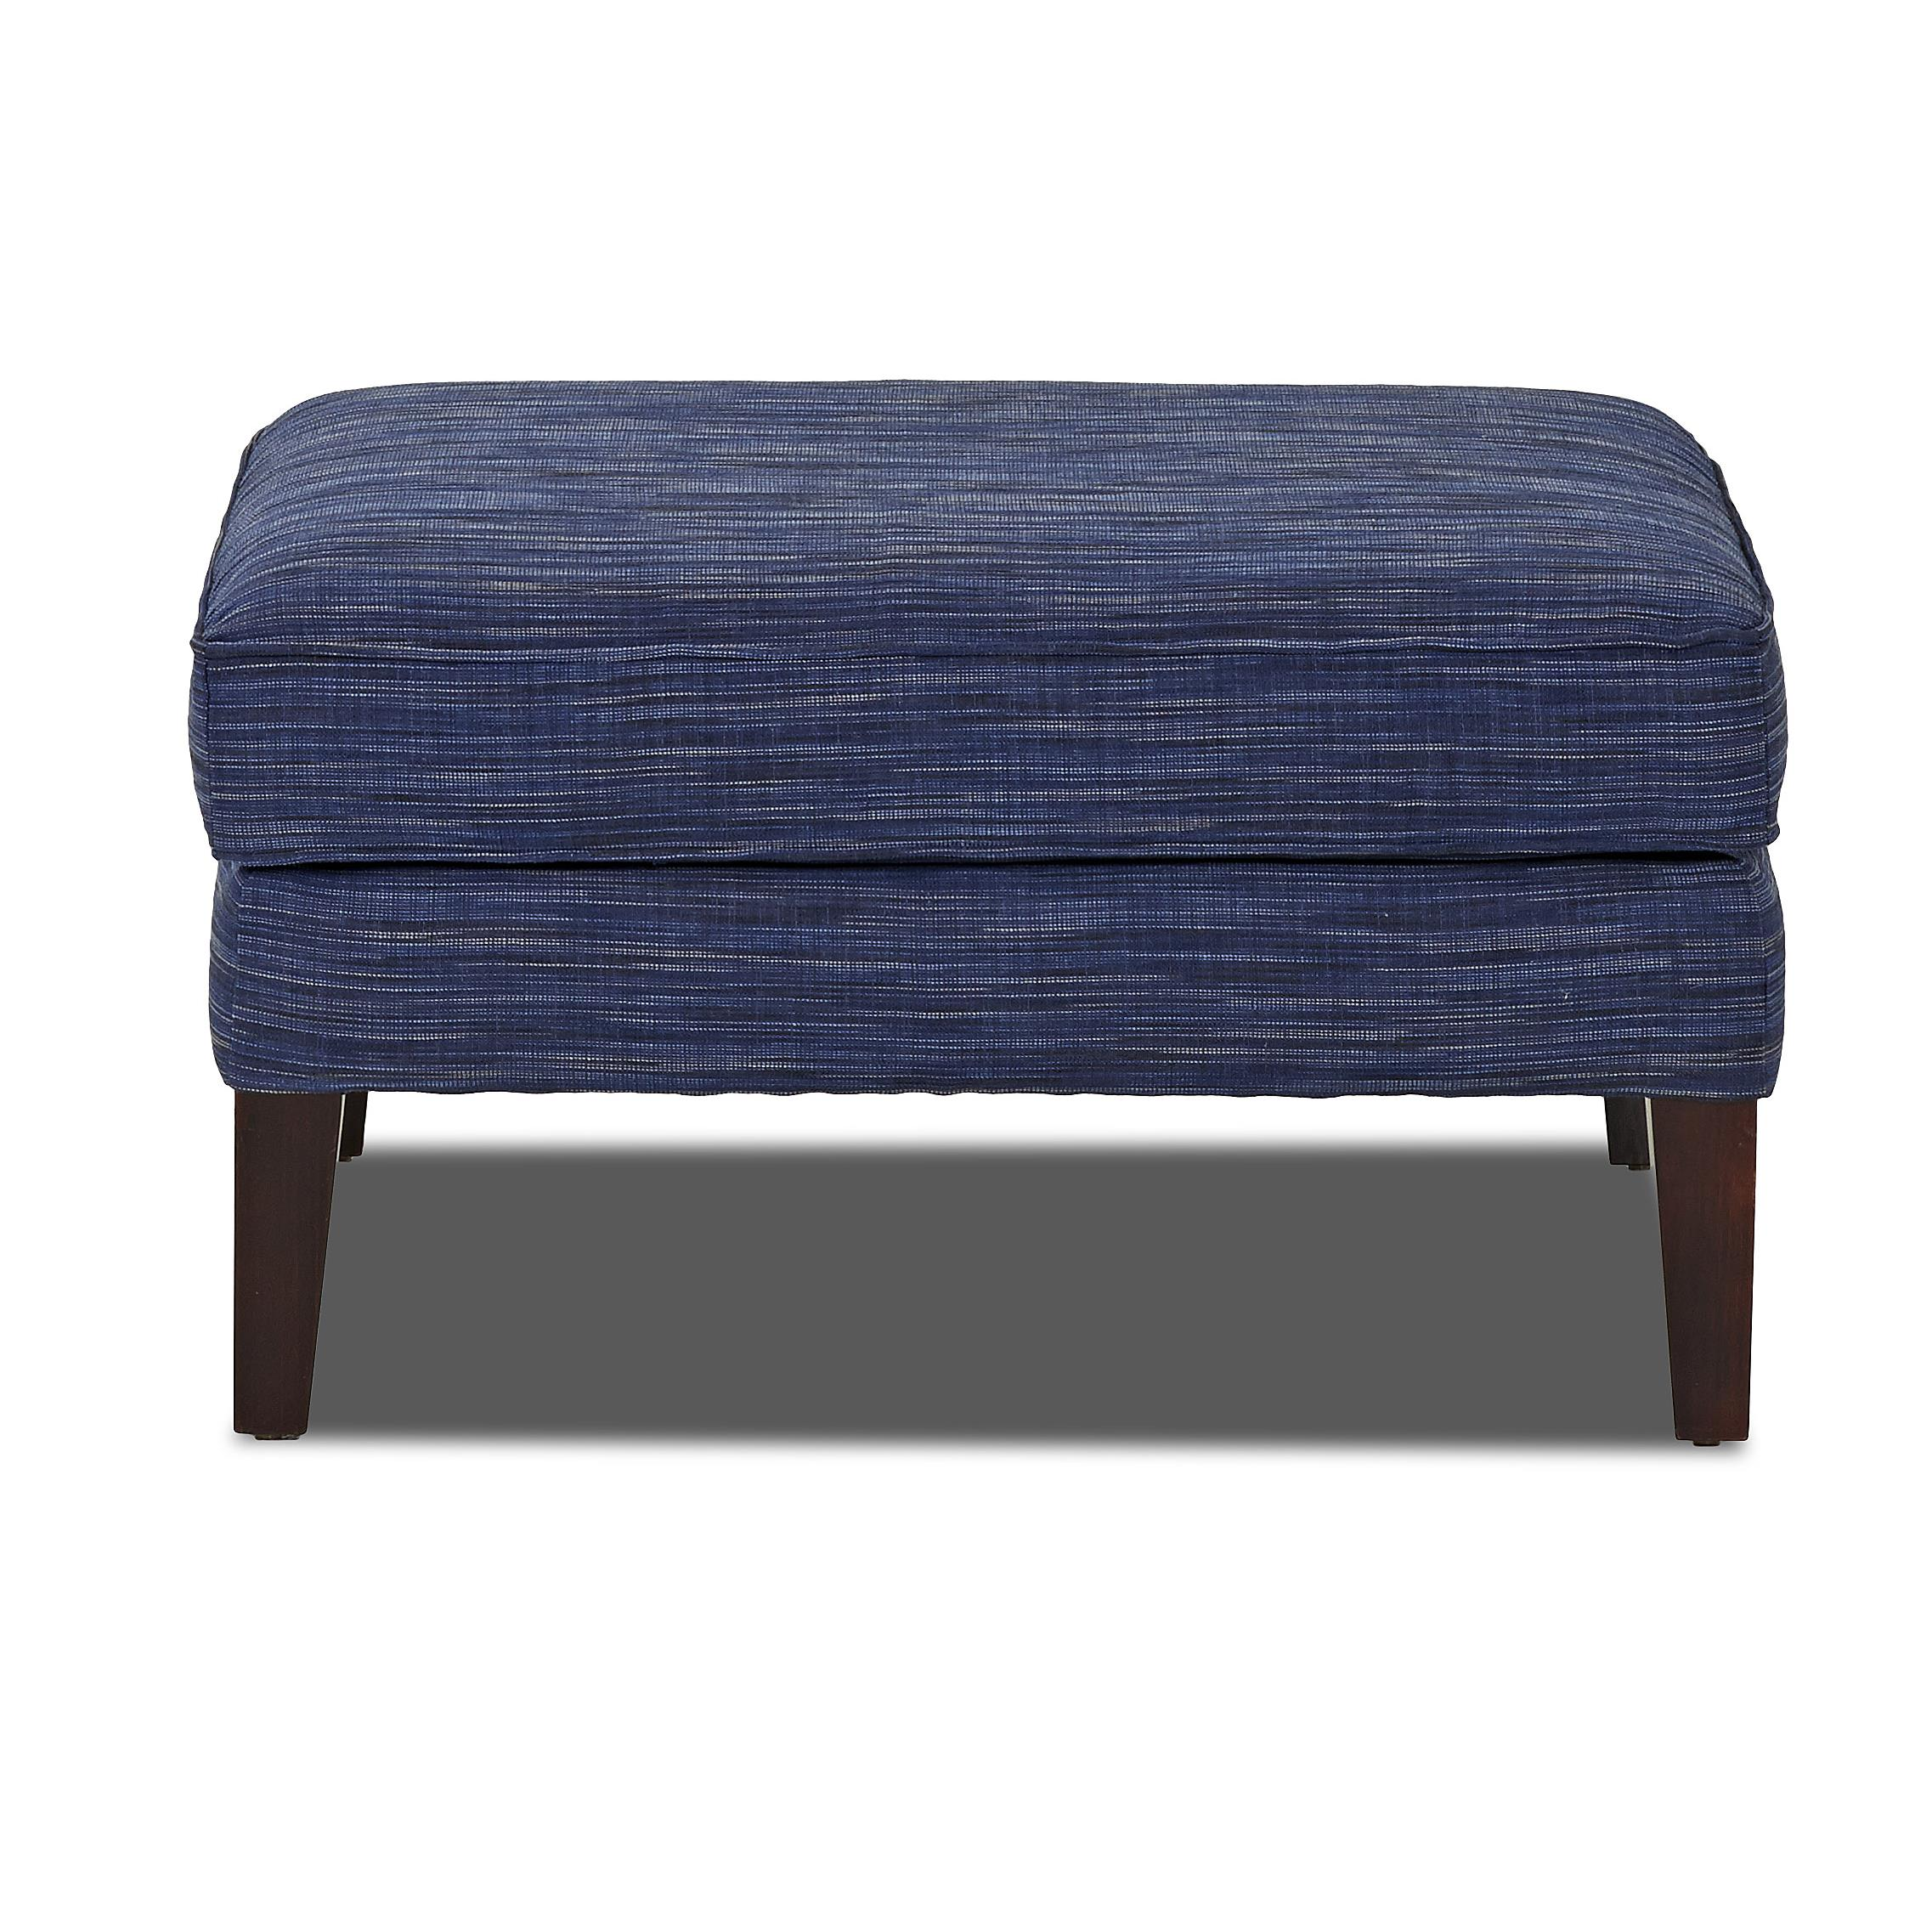 Elizabeth Ottoman by Klaussner at Northeast Factory Direct